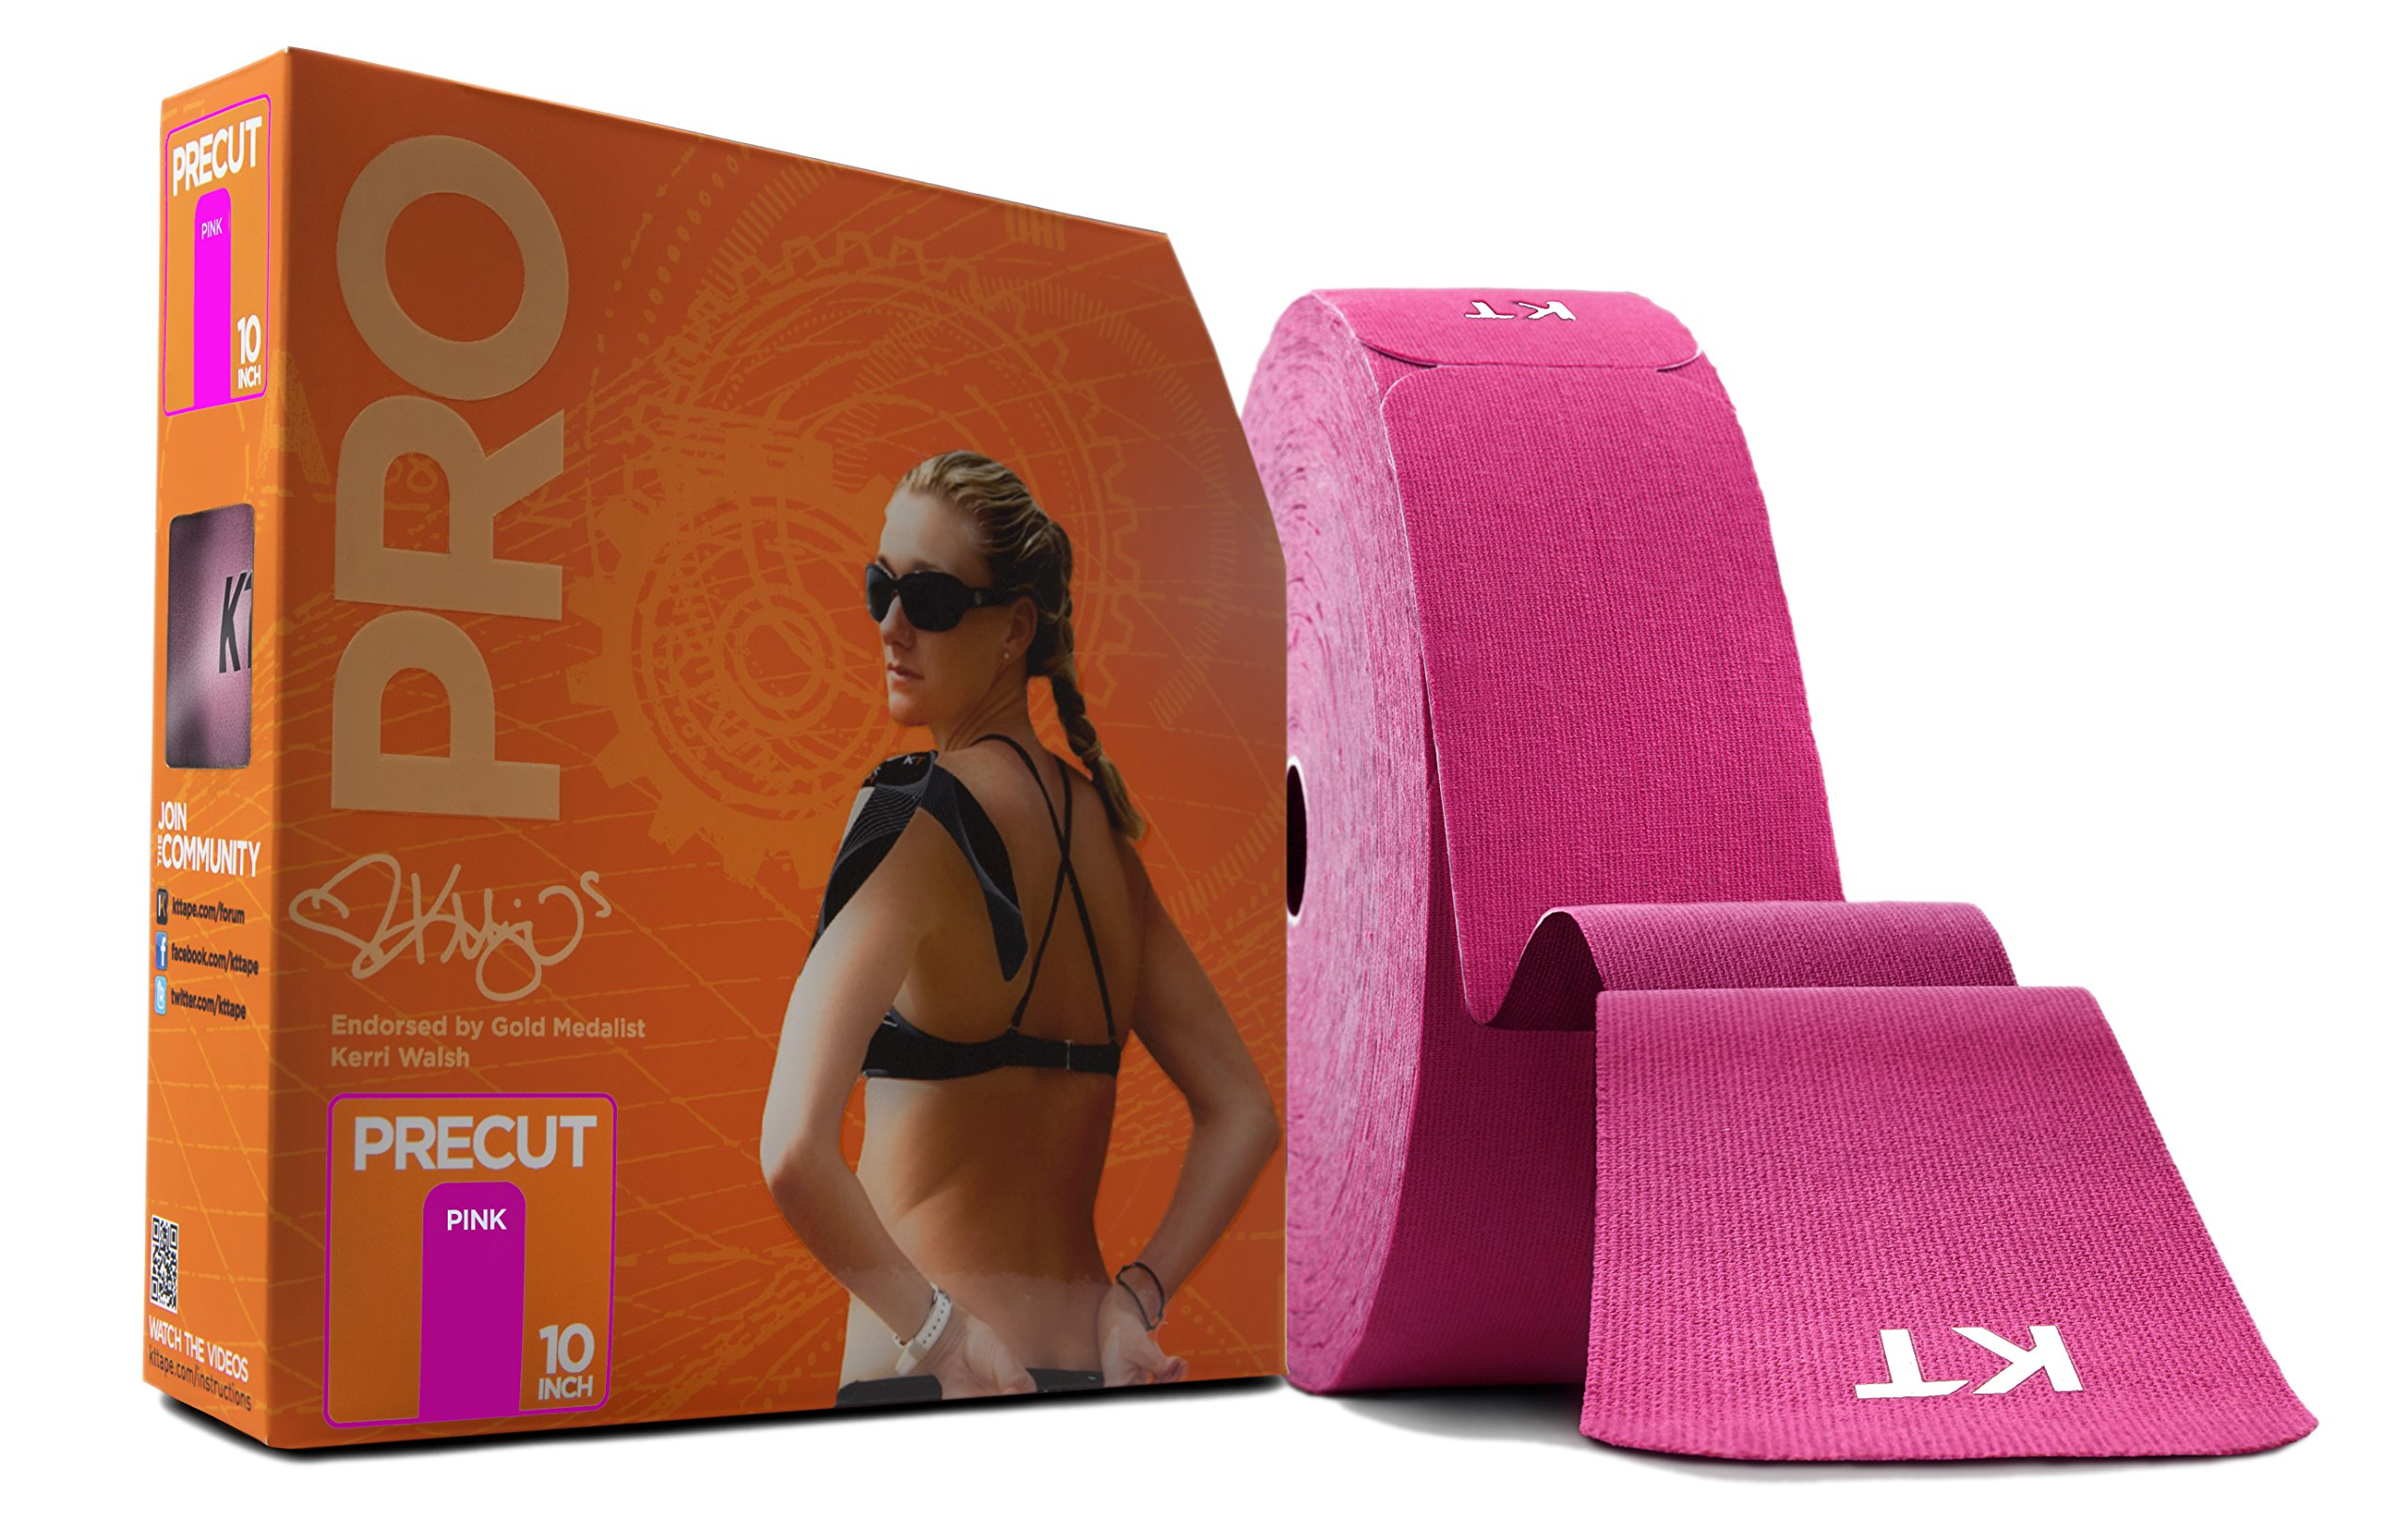 KT Tape PRO Synthetic Elastic Kinesiology Therapeutic Tape, Jumbo 150 Precut 10 Inch Strips, Pink